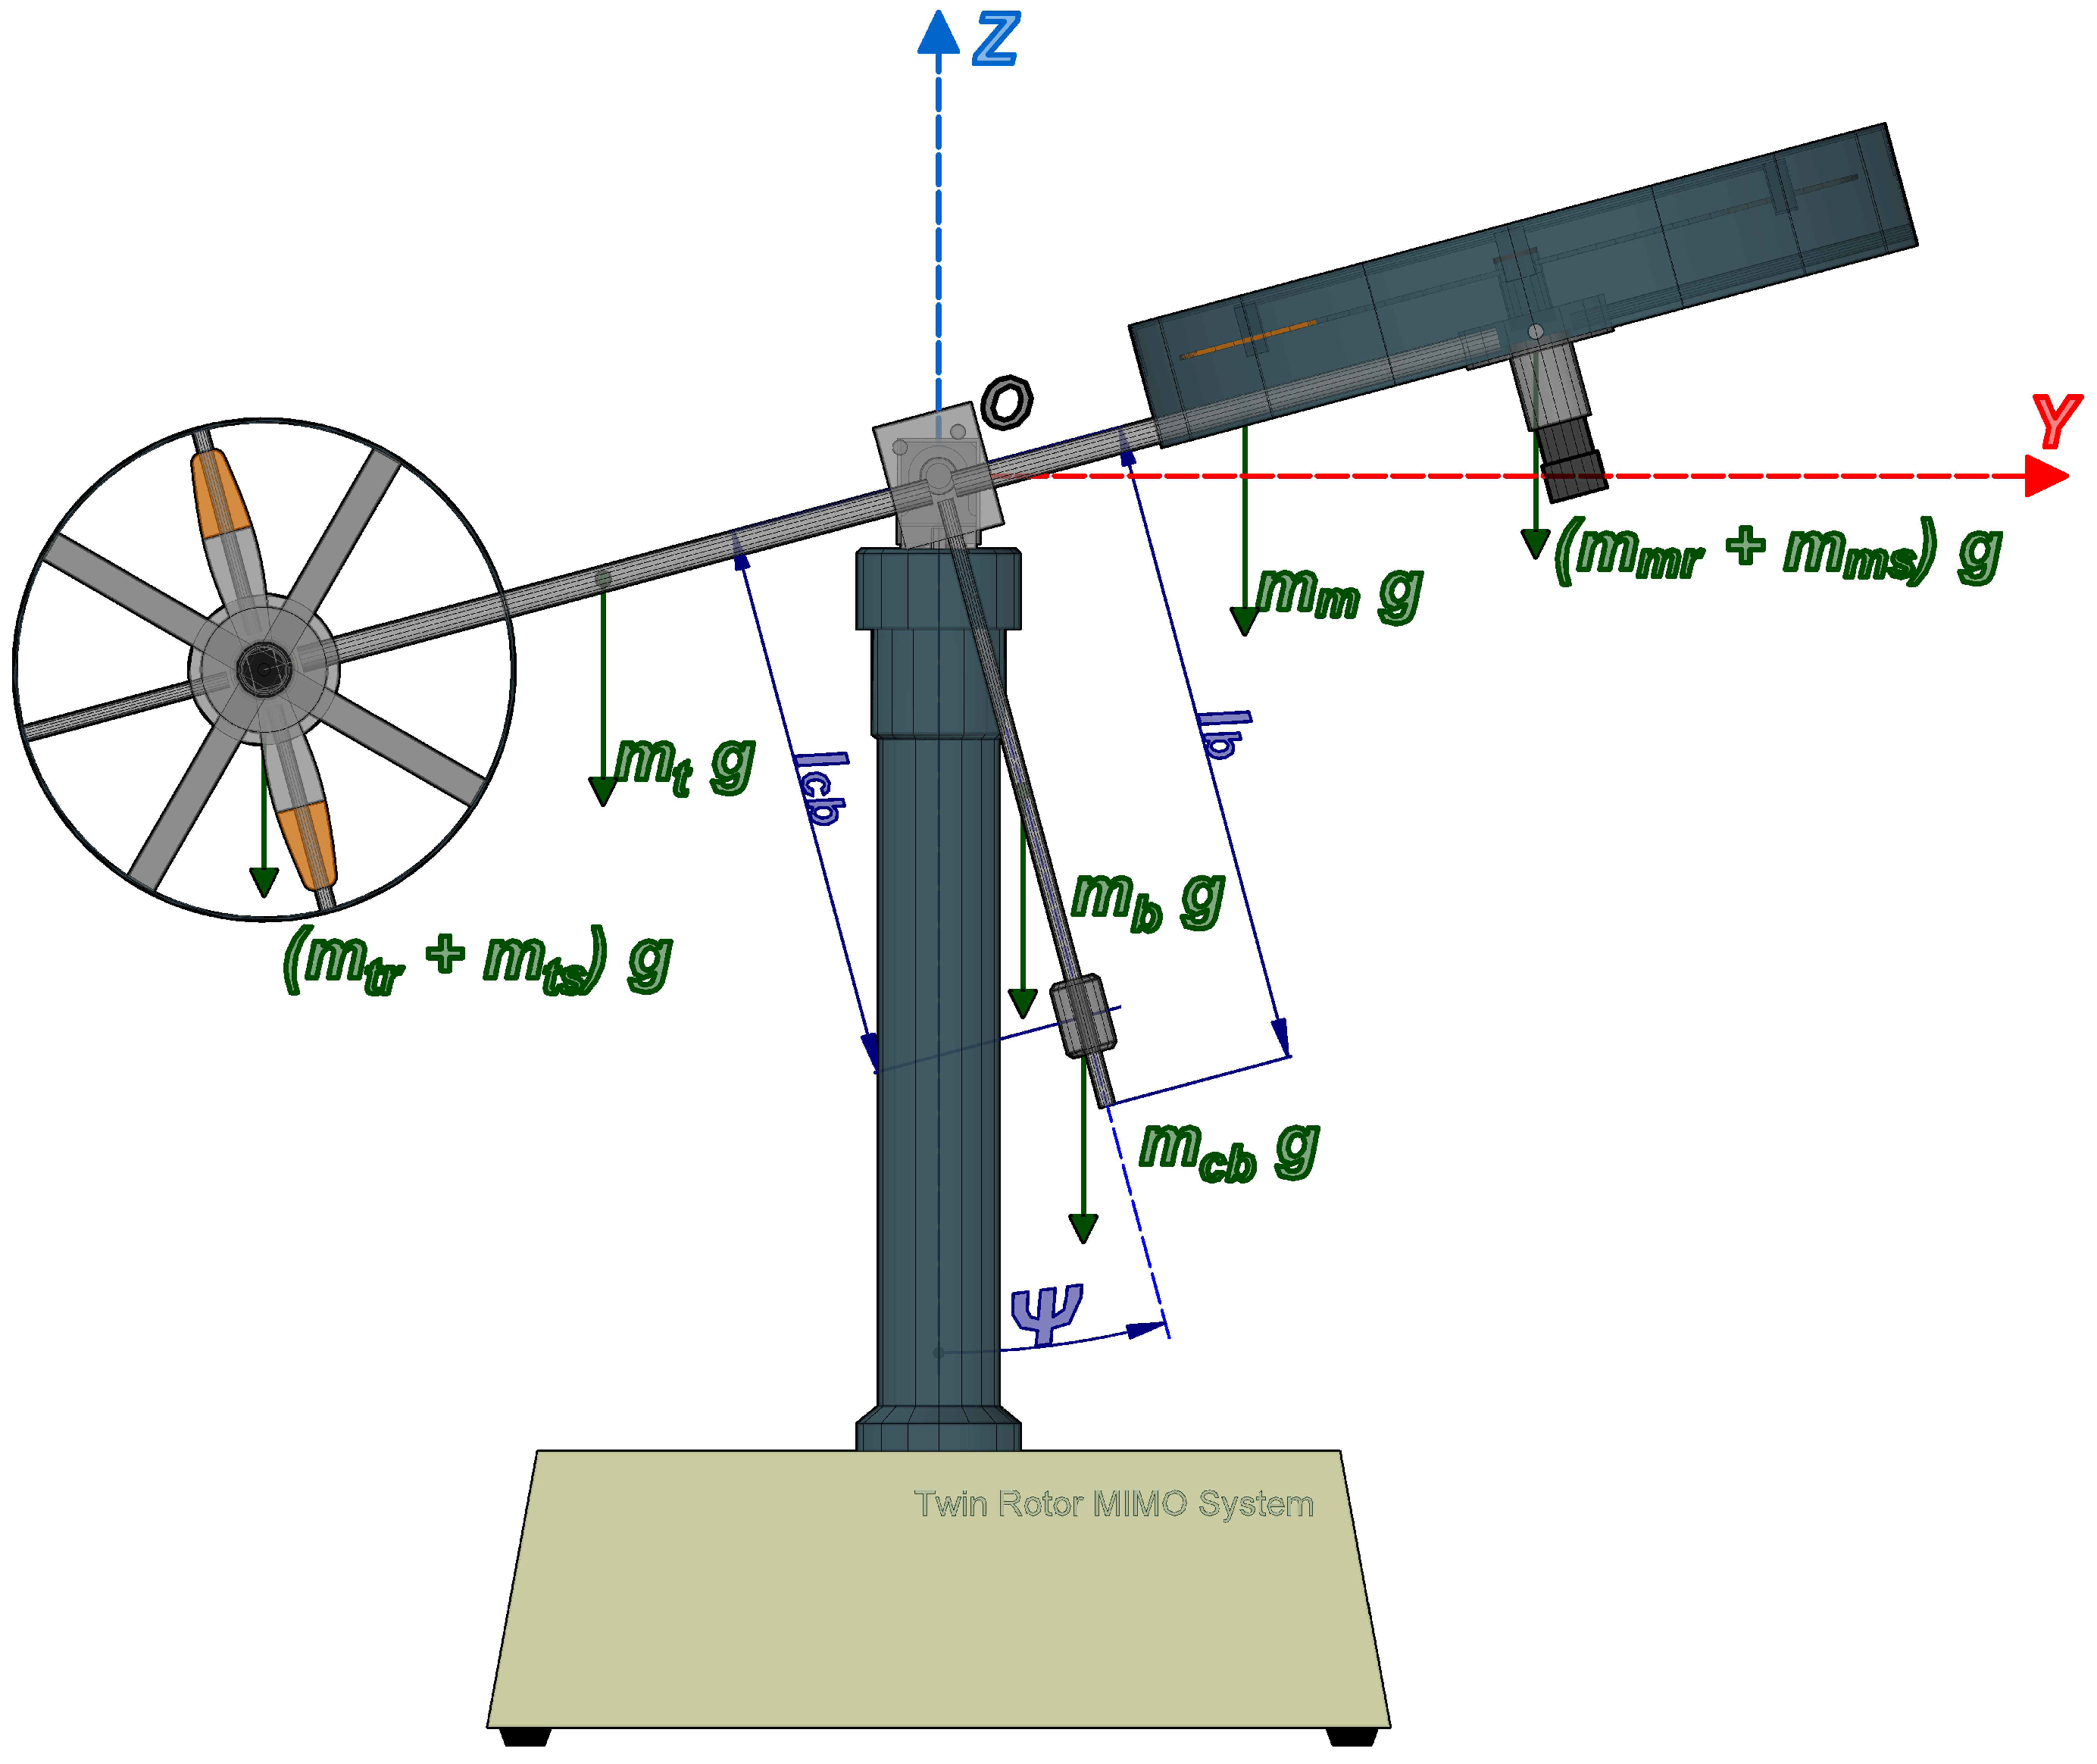 control theory and twin rotor A study of helicopter stability and control including bi/ade dynamics xin zhao h c curtis_, jr  with the tail rotor and fixed tail surfaces is a significant  control and that.